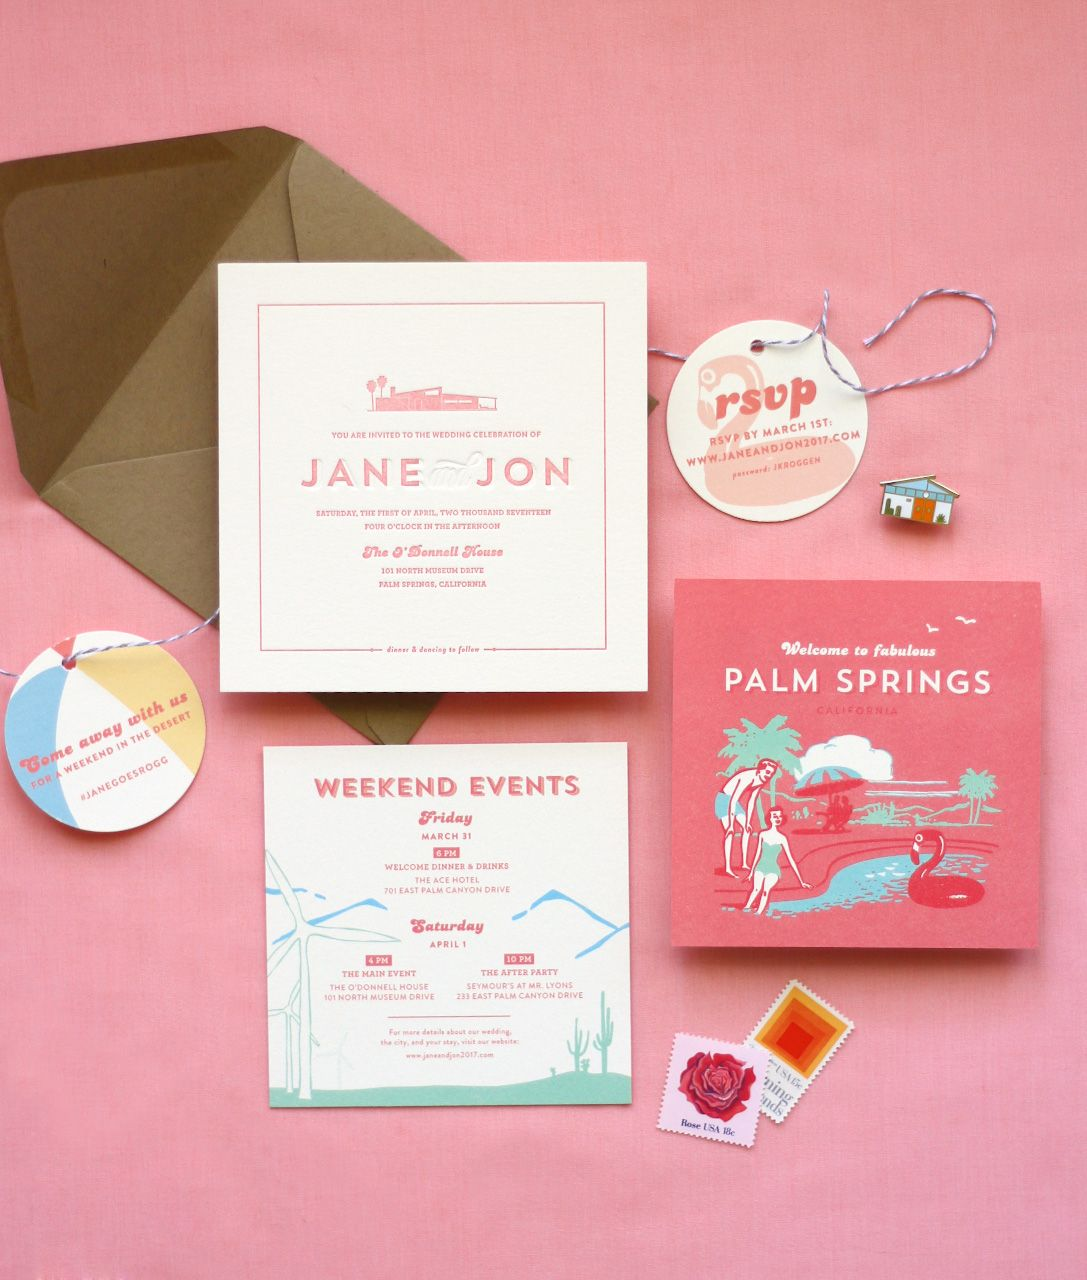 are labels on wedding invitations tacky%0A Retro midcentury Palm Springs wedding invitation with beach ball and  flamingo accents  Letterpress